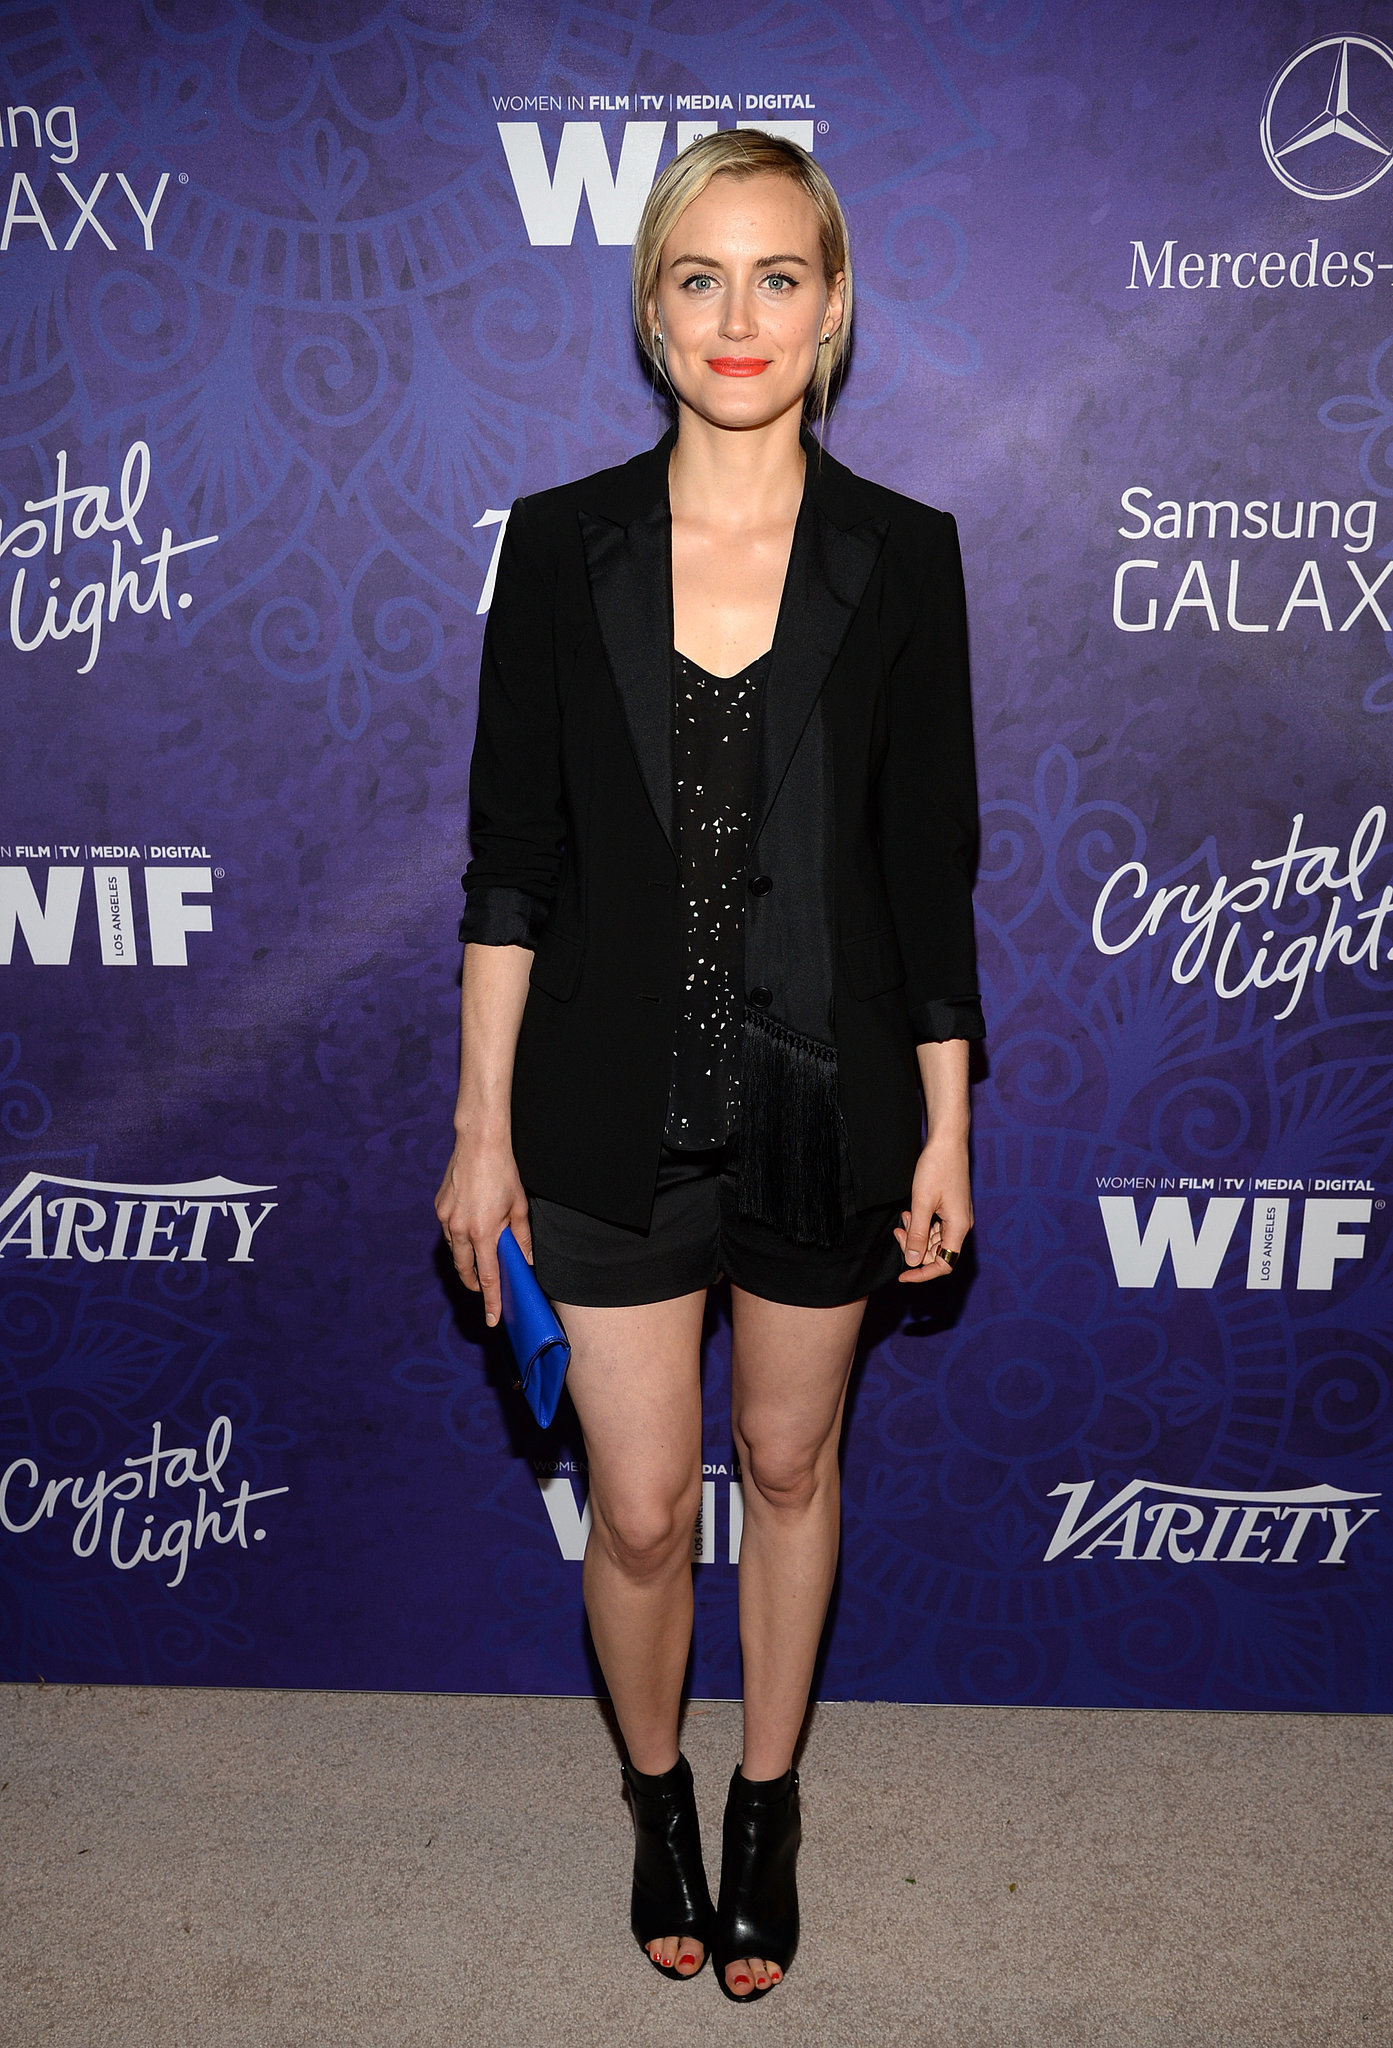 Taylor Schilling went for a black look.